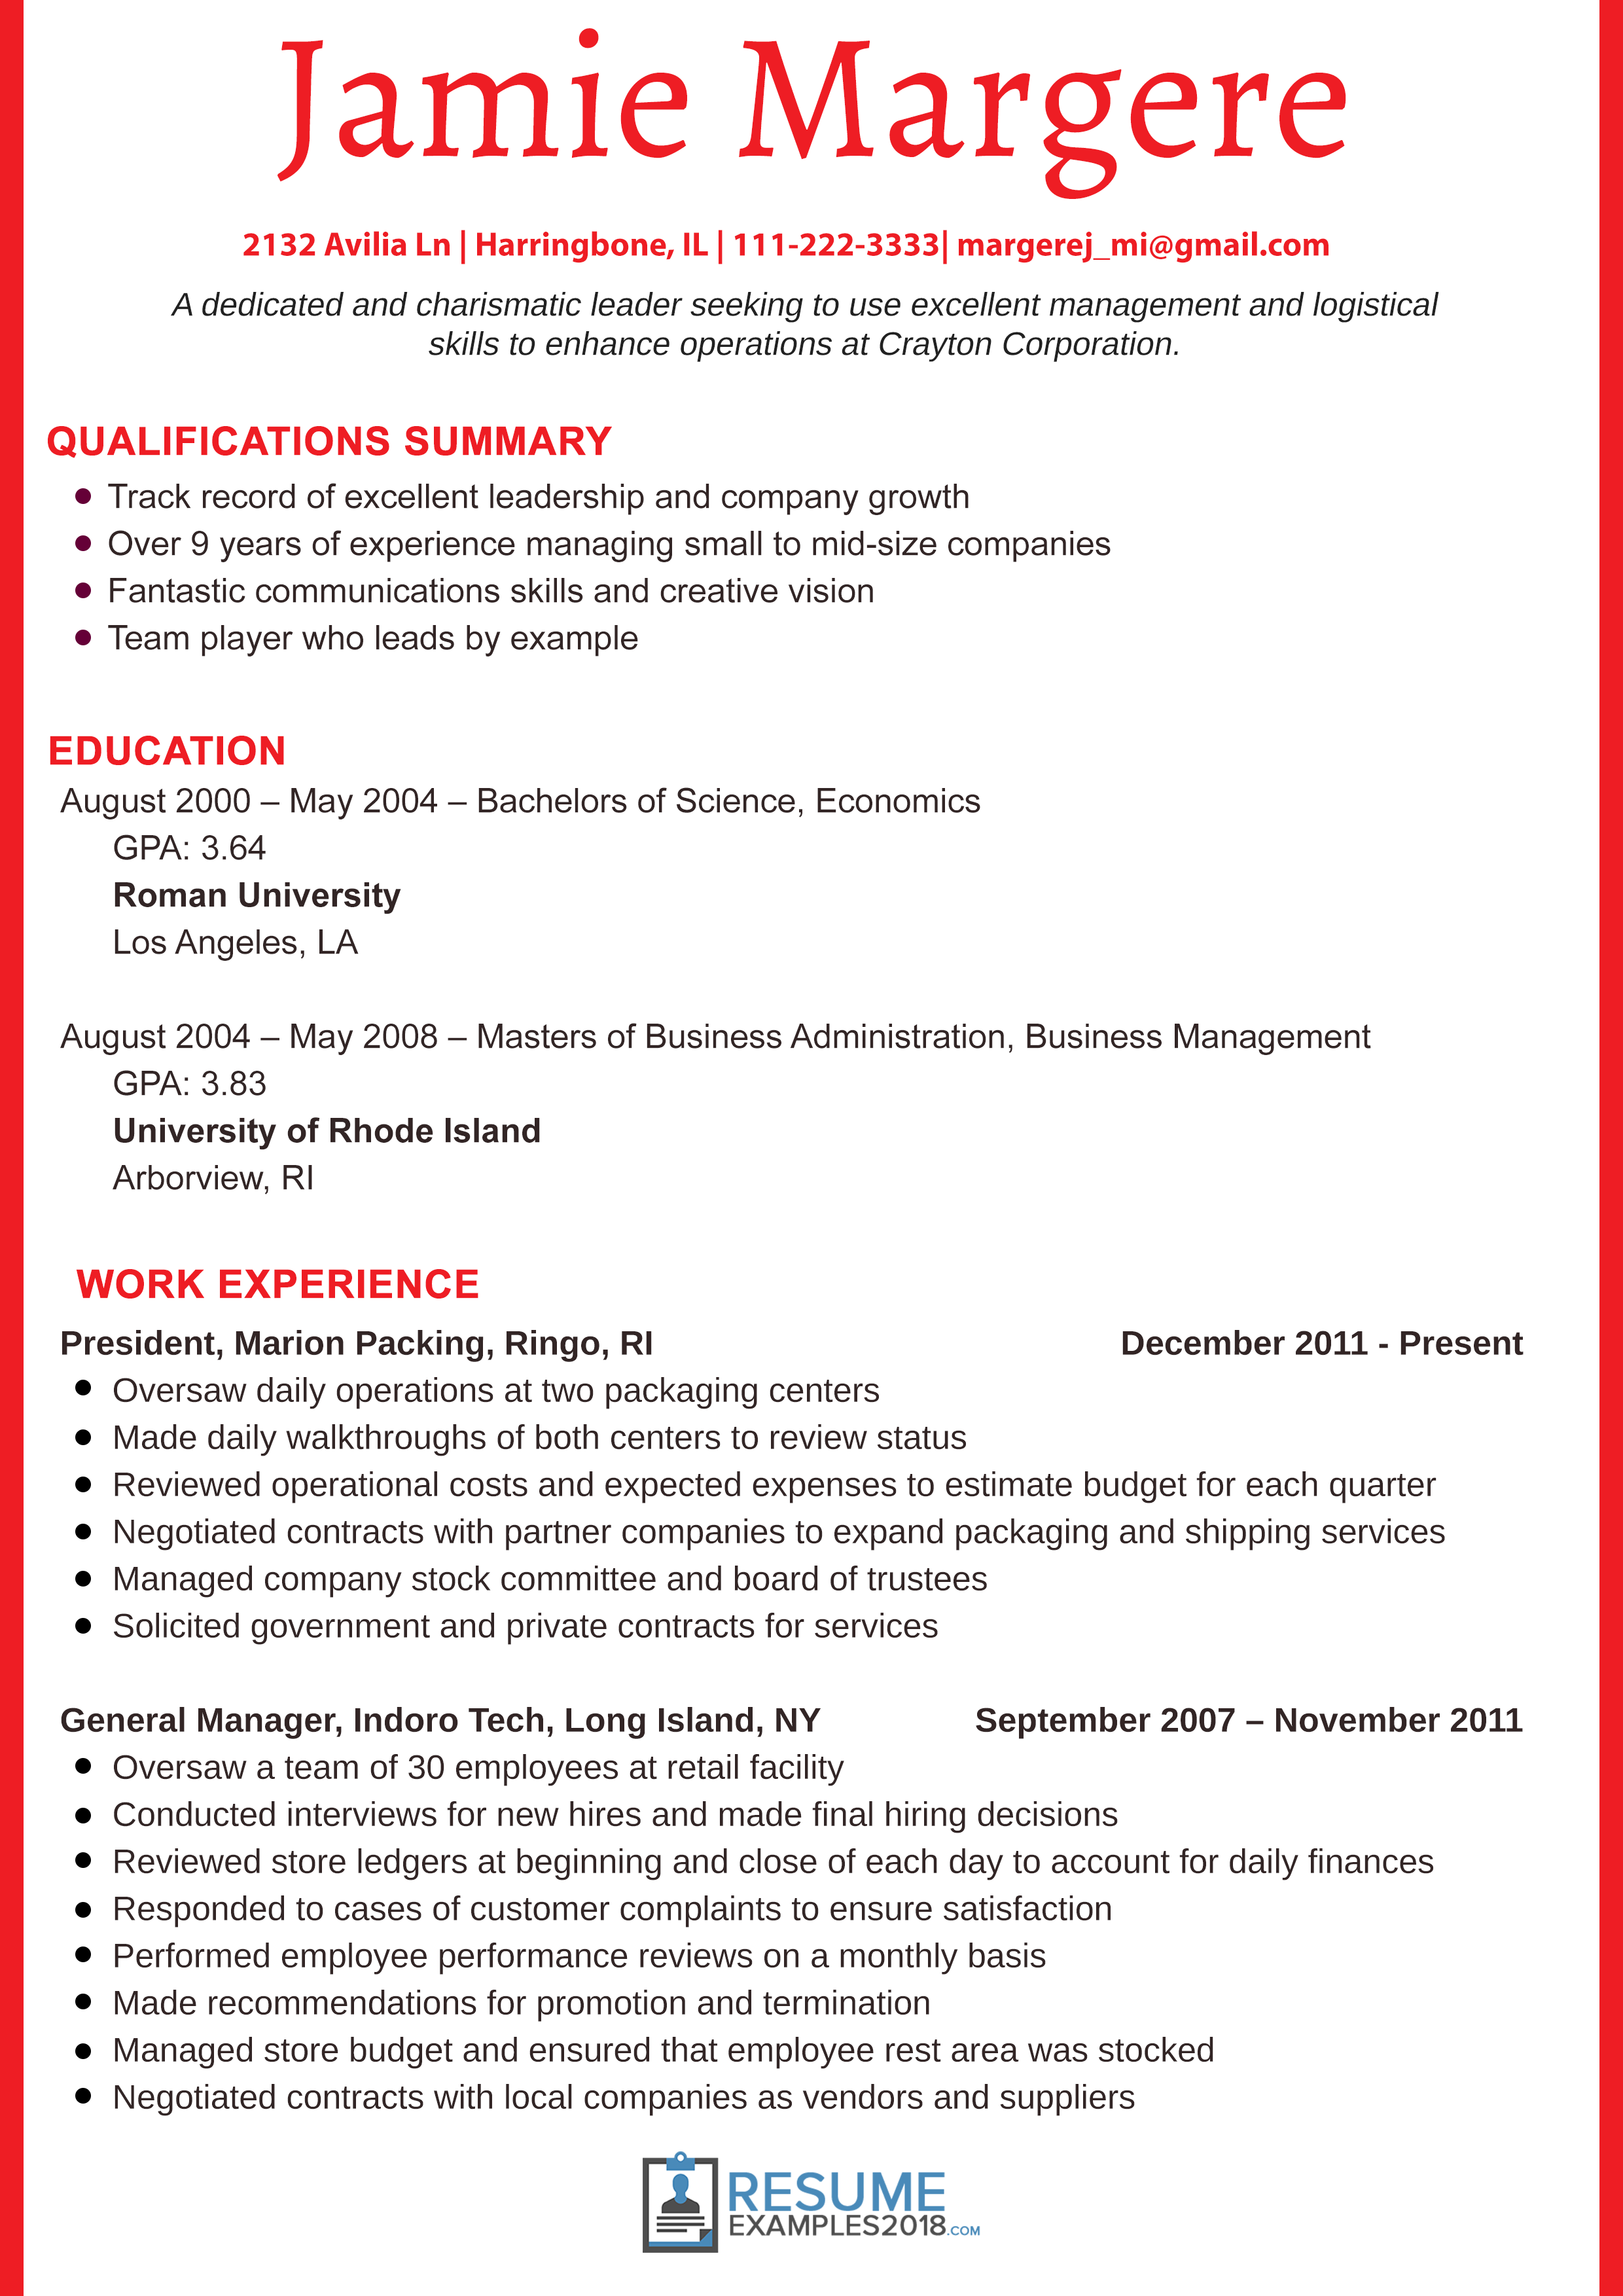 Resume Examples 2018 For Students Resume Templates Teacher Resume Examples Resume Examples Basic Resume Examples